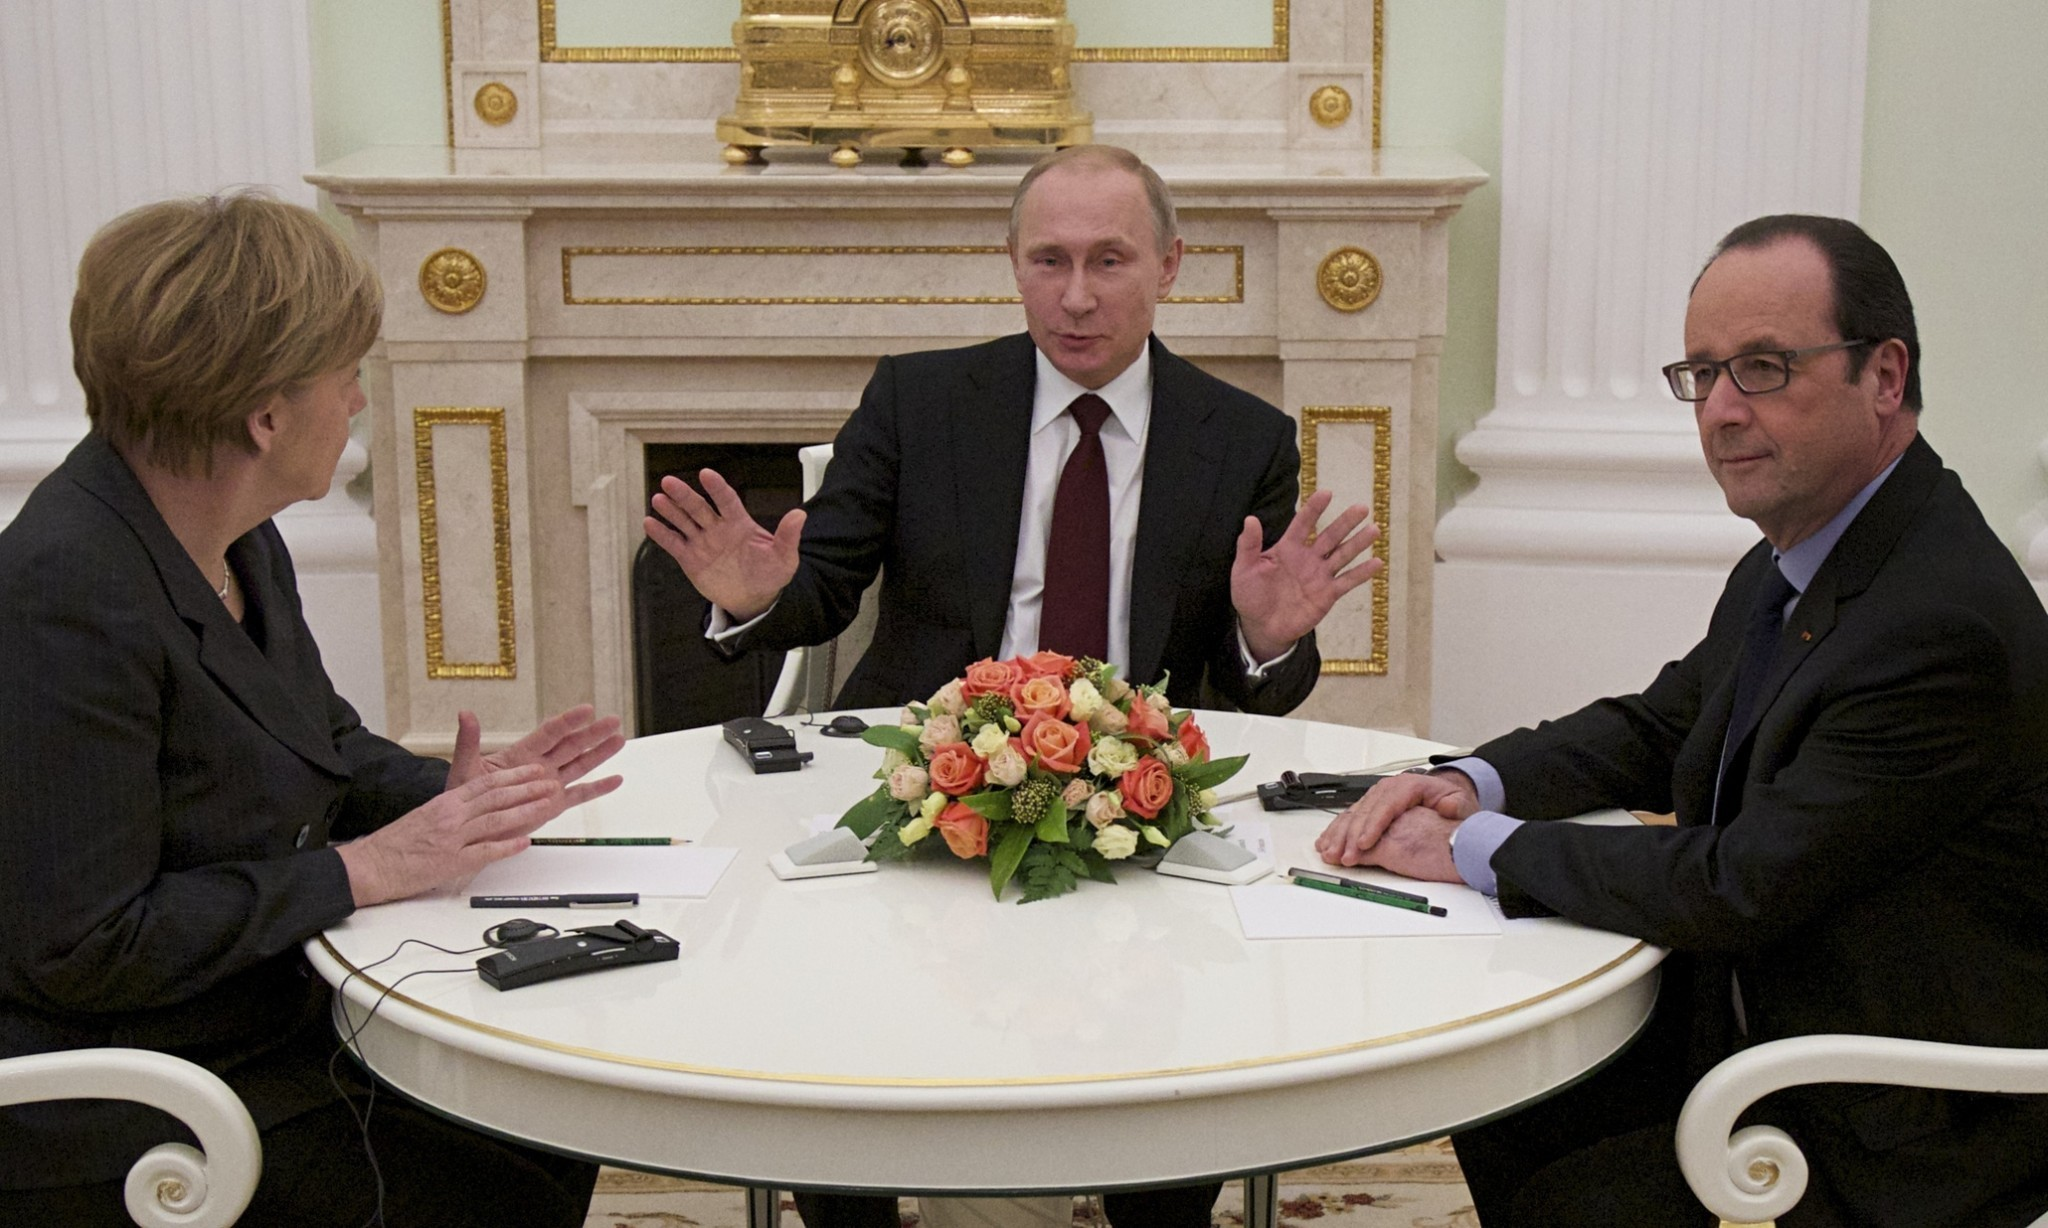 Putin and Ukraine leader to hold phone talks after inconclusive end to summit